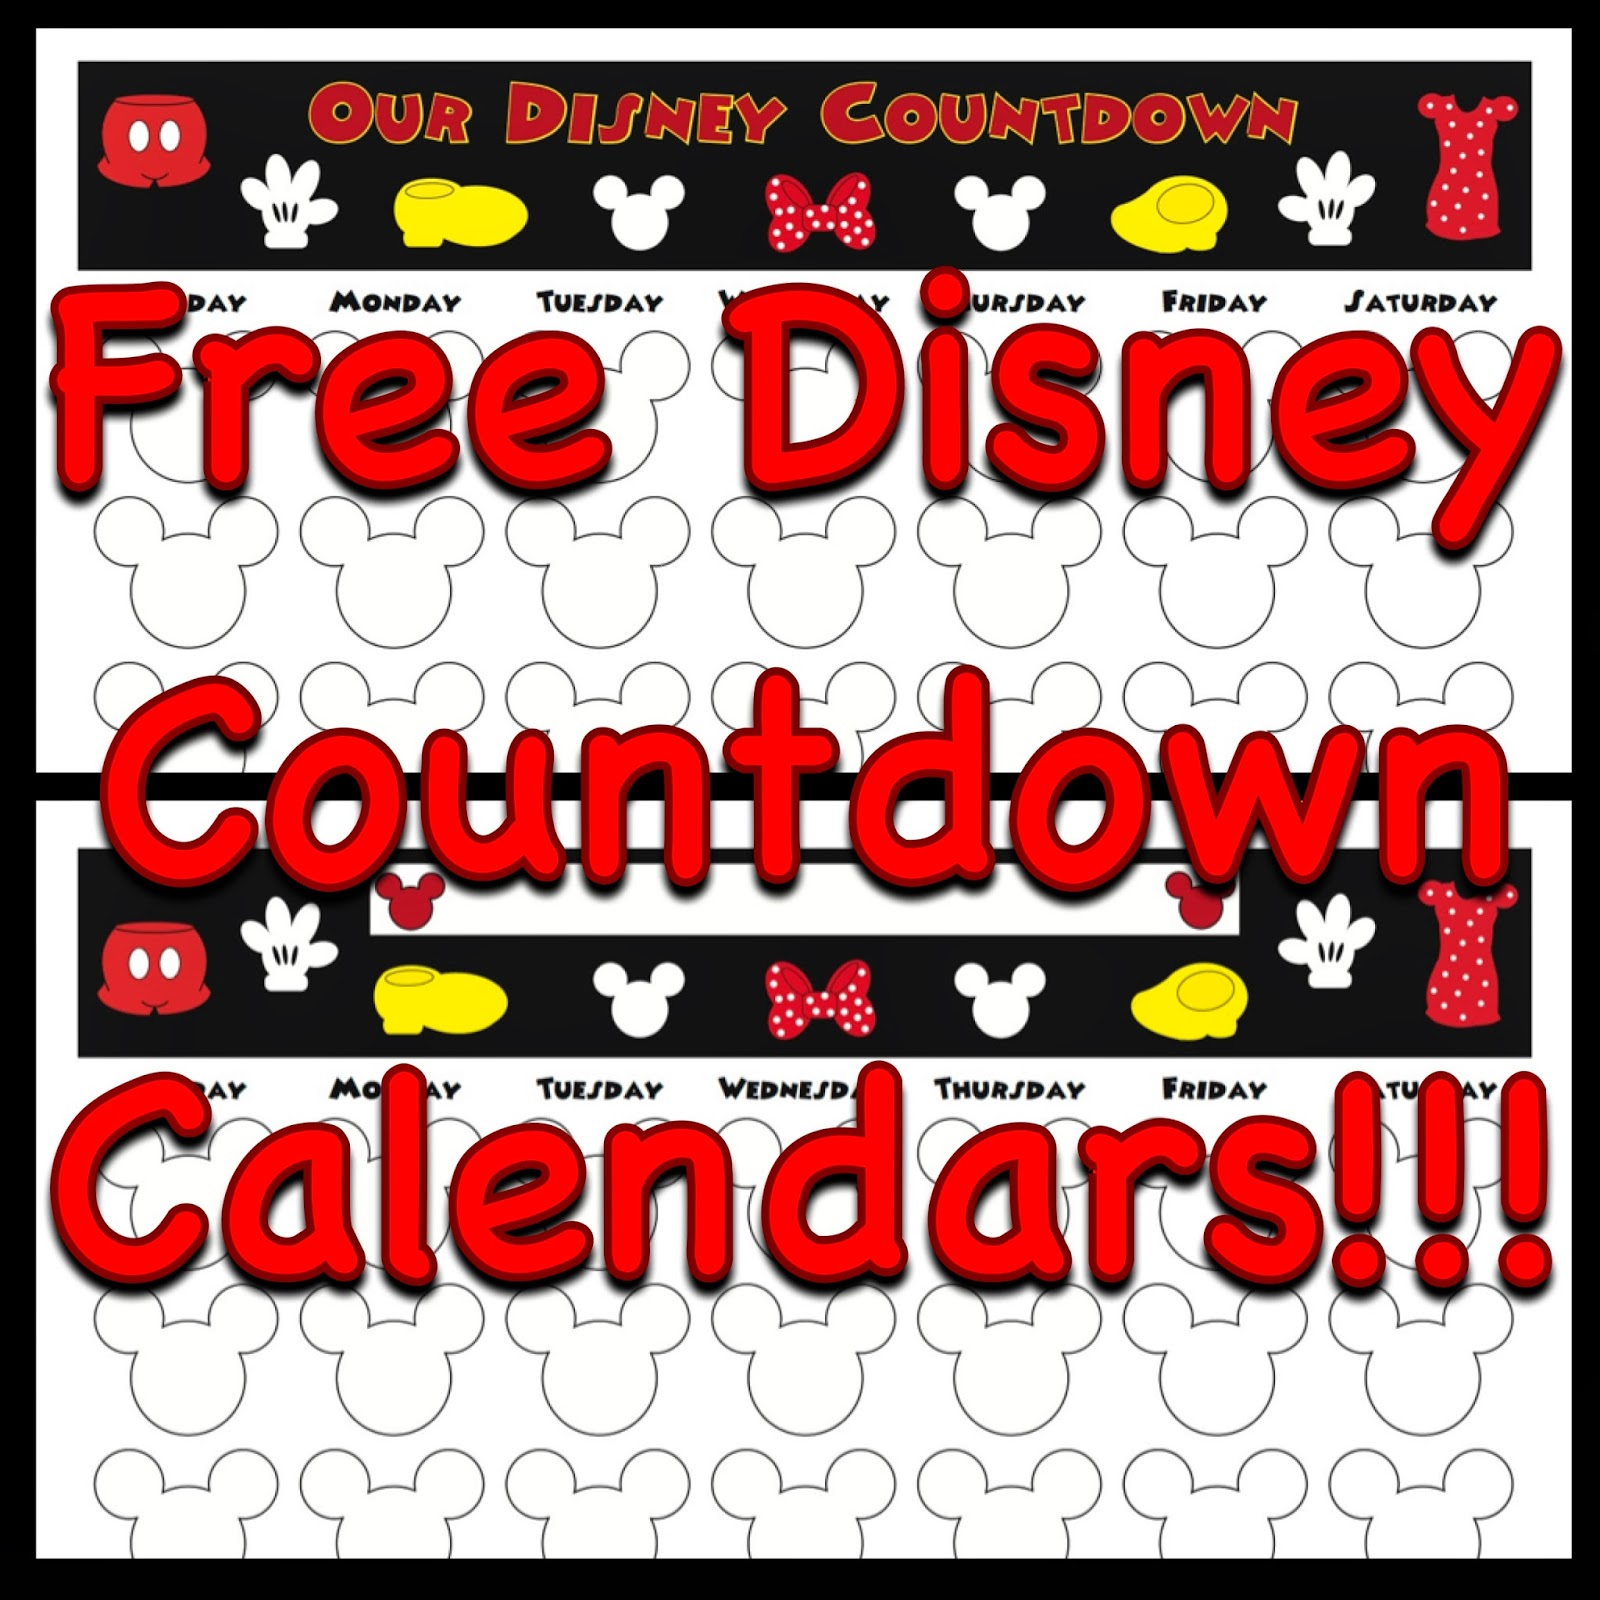 Countdown calendar clipart clip art black and white library 78+ images about Countdown calendars on Pinterest   Disney ... clip art black and white library